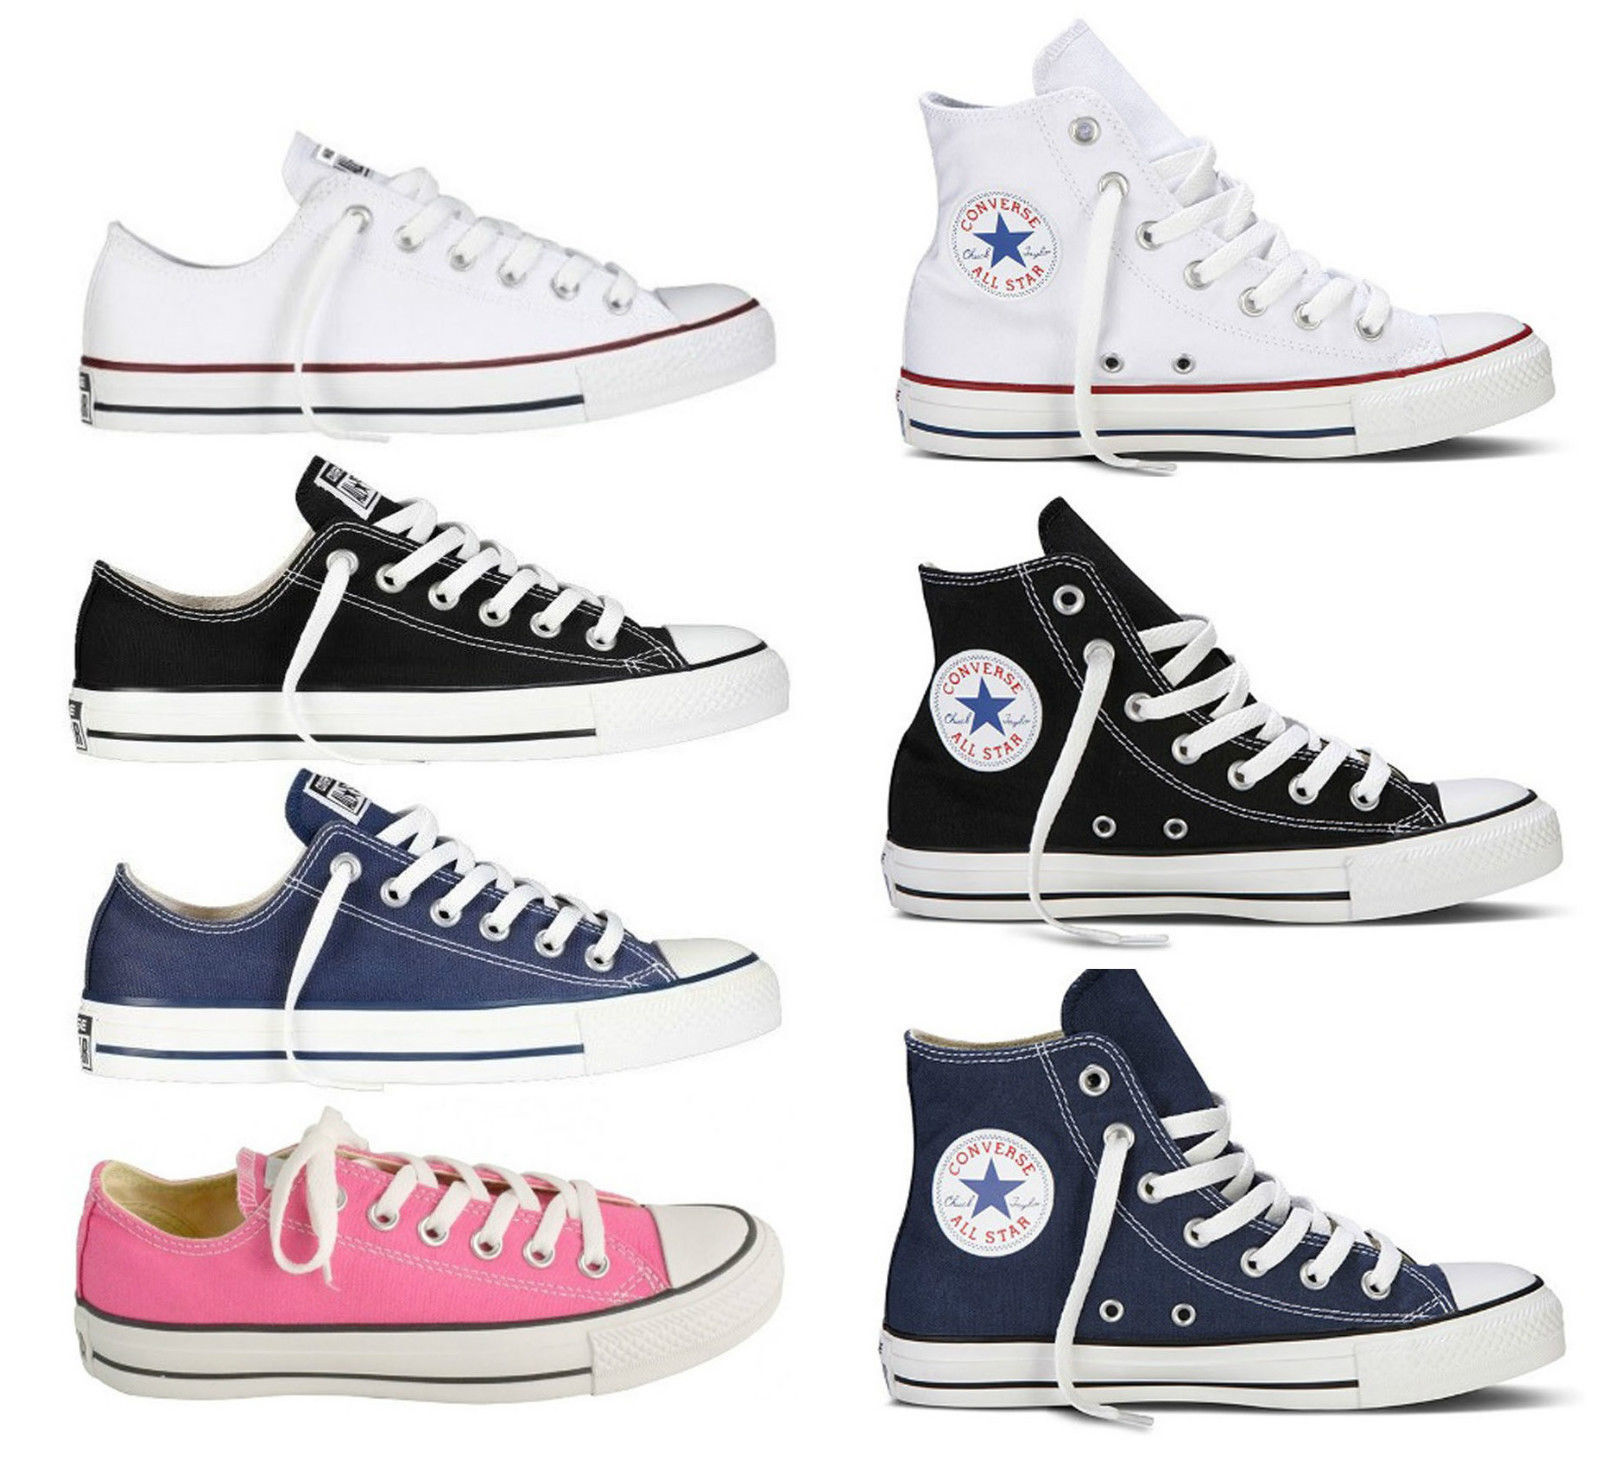 converse chuck taylor all star nere basse